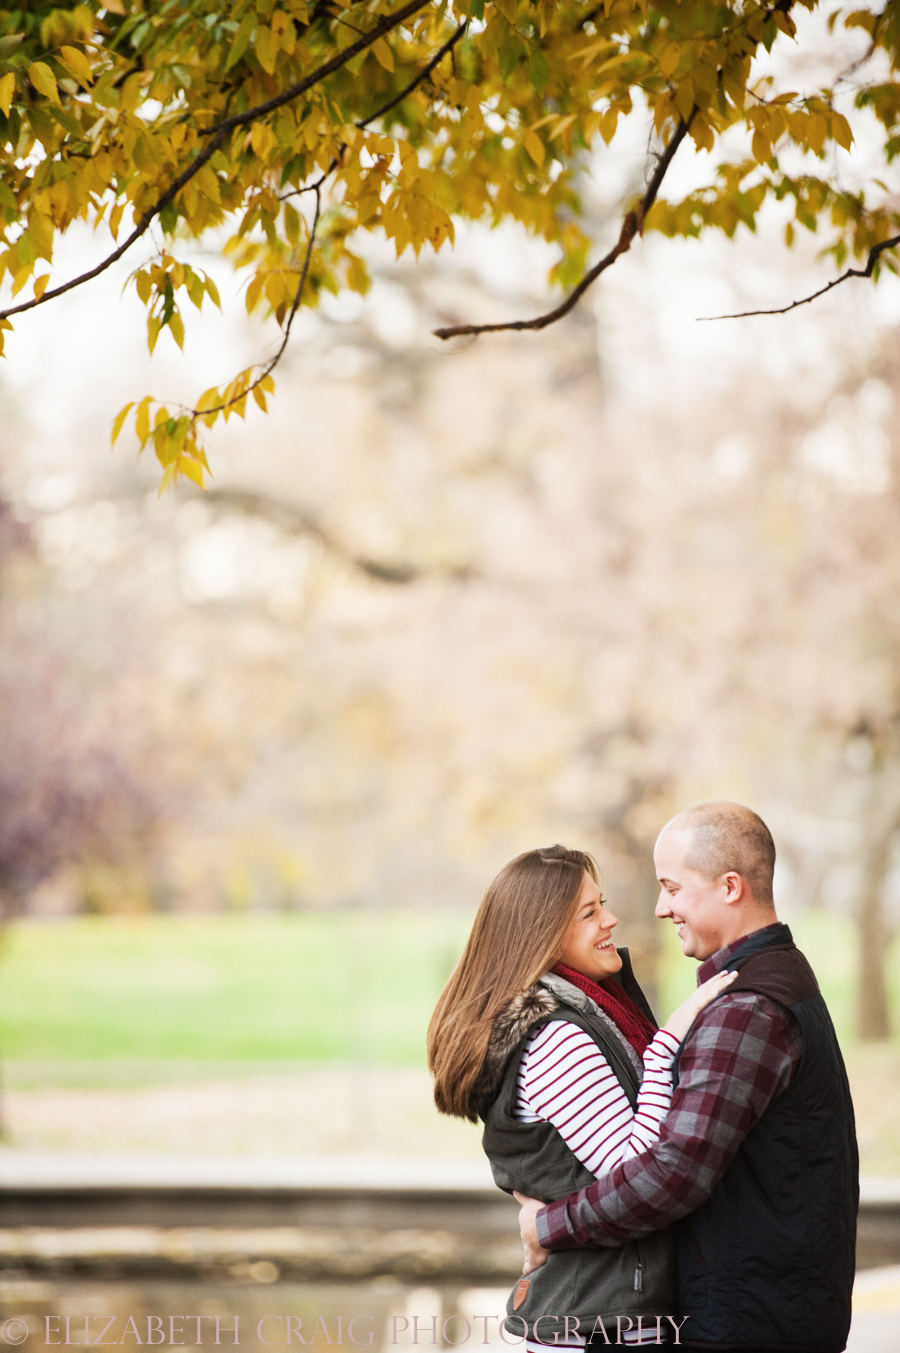 fall-engagement-photos-pittsburgh-elizabeth-craig-photography-002